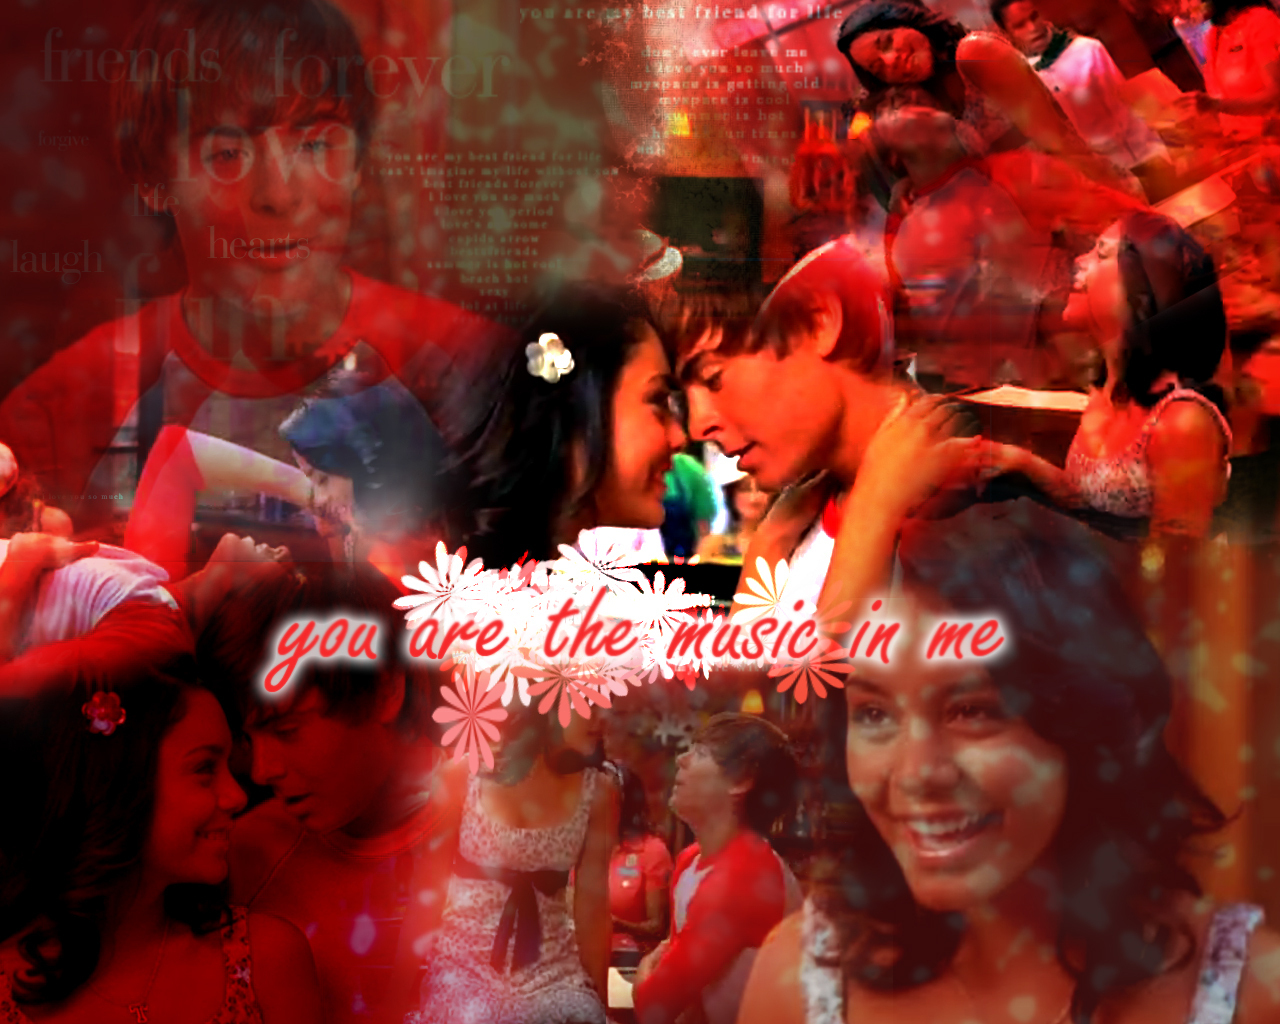 high school musical images zanessa! hd wallpaper and background